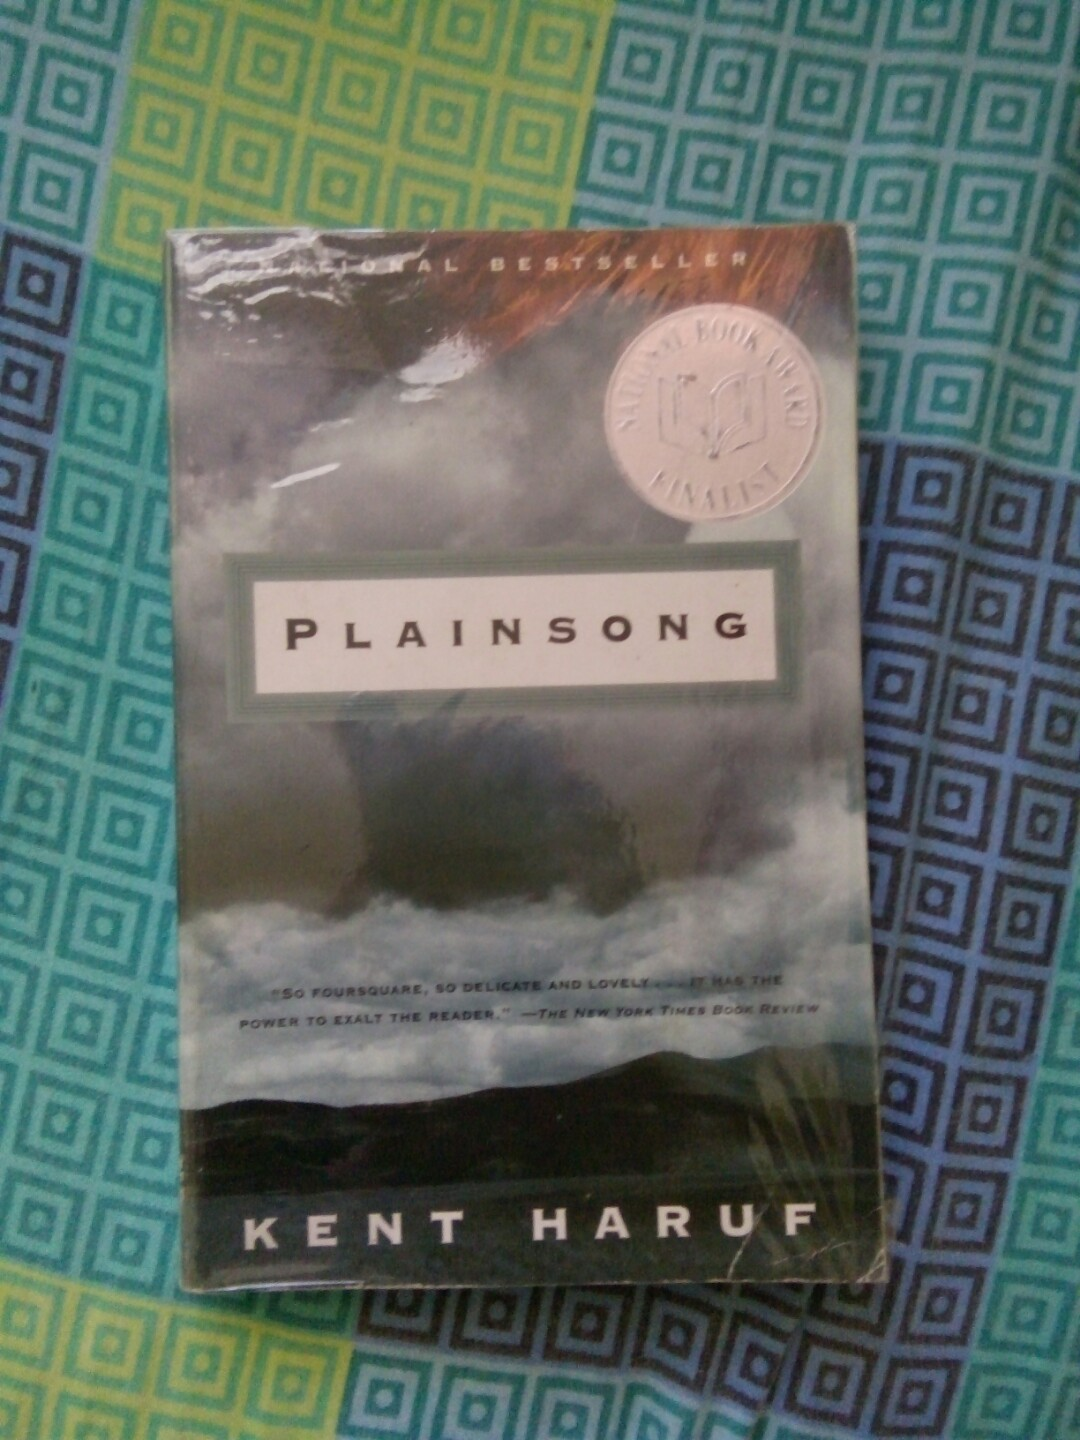 garage book - Plainsong on Carousell